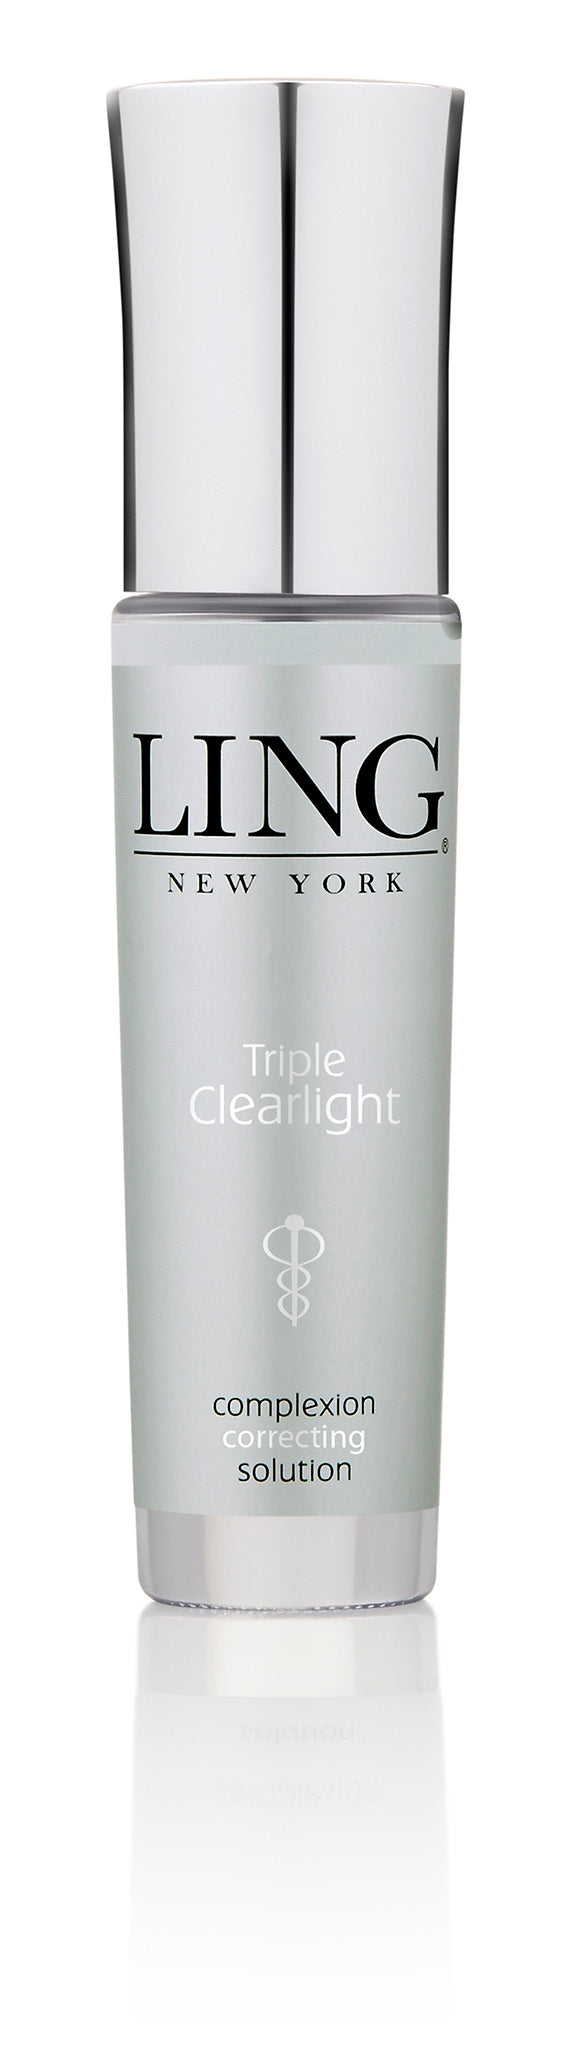 Triple Clearlight Complexion Correcting Solution